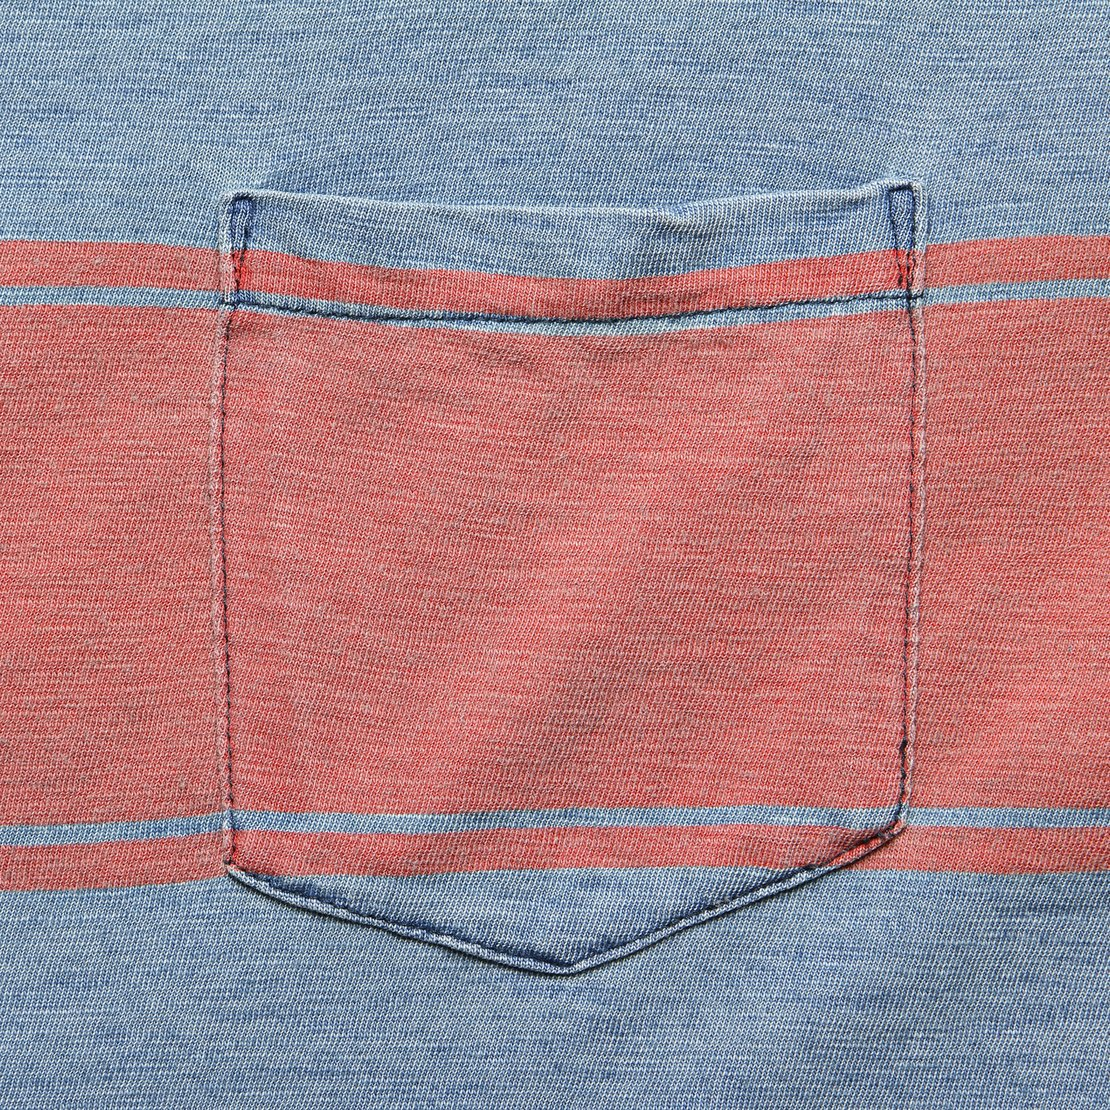 Surf Stripe Pocket Tee - Vintage Blue